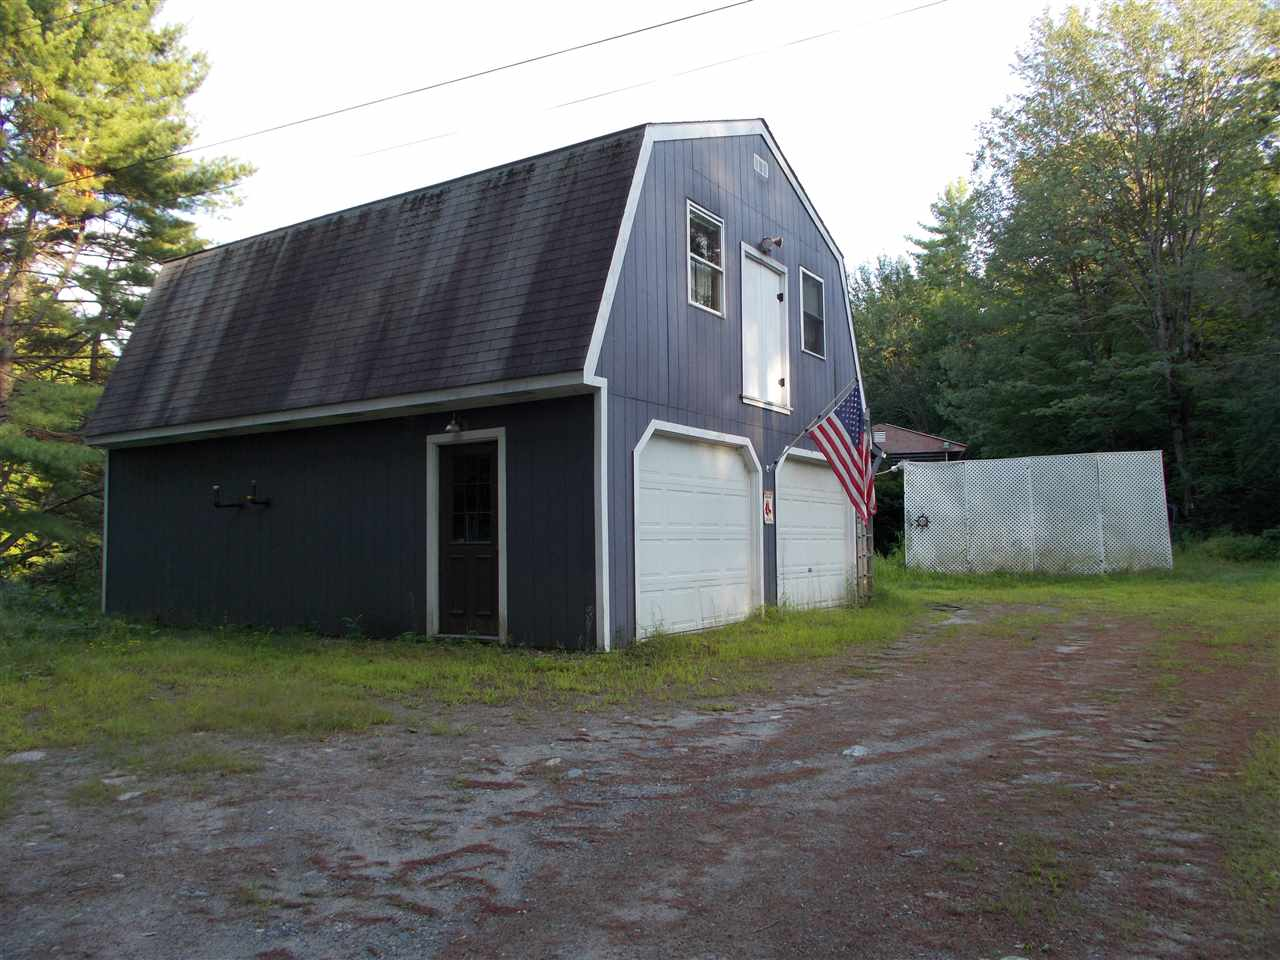 CORNISH NH Homes for sale